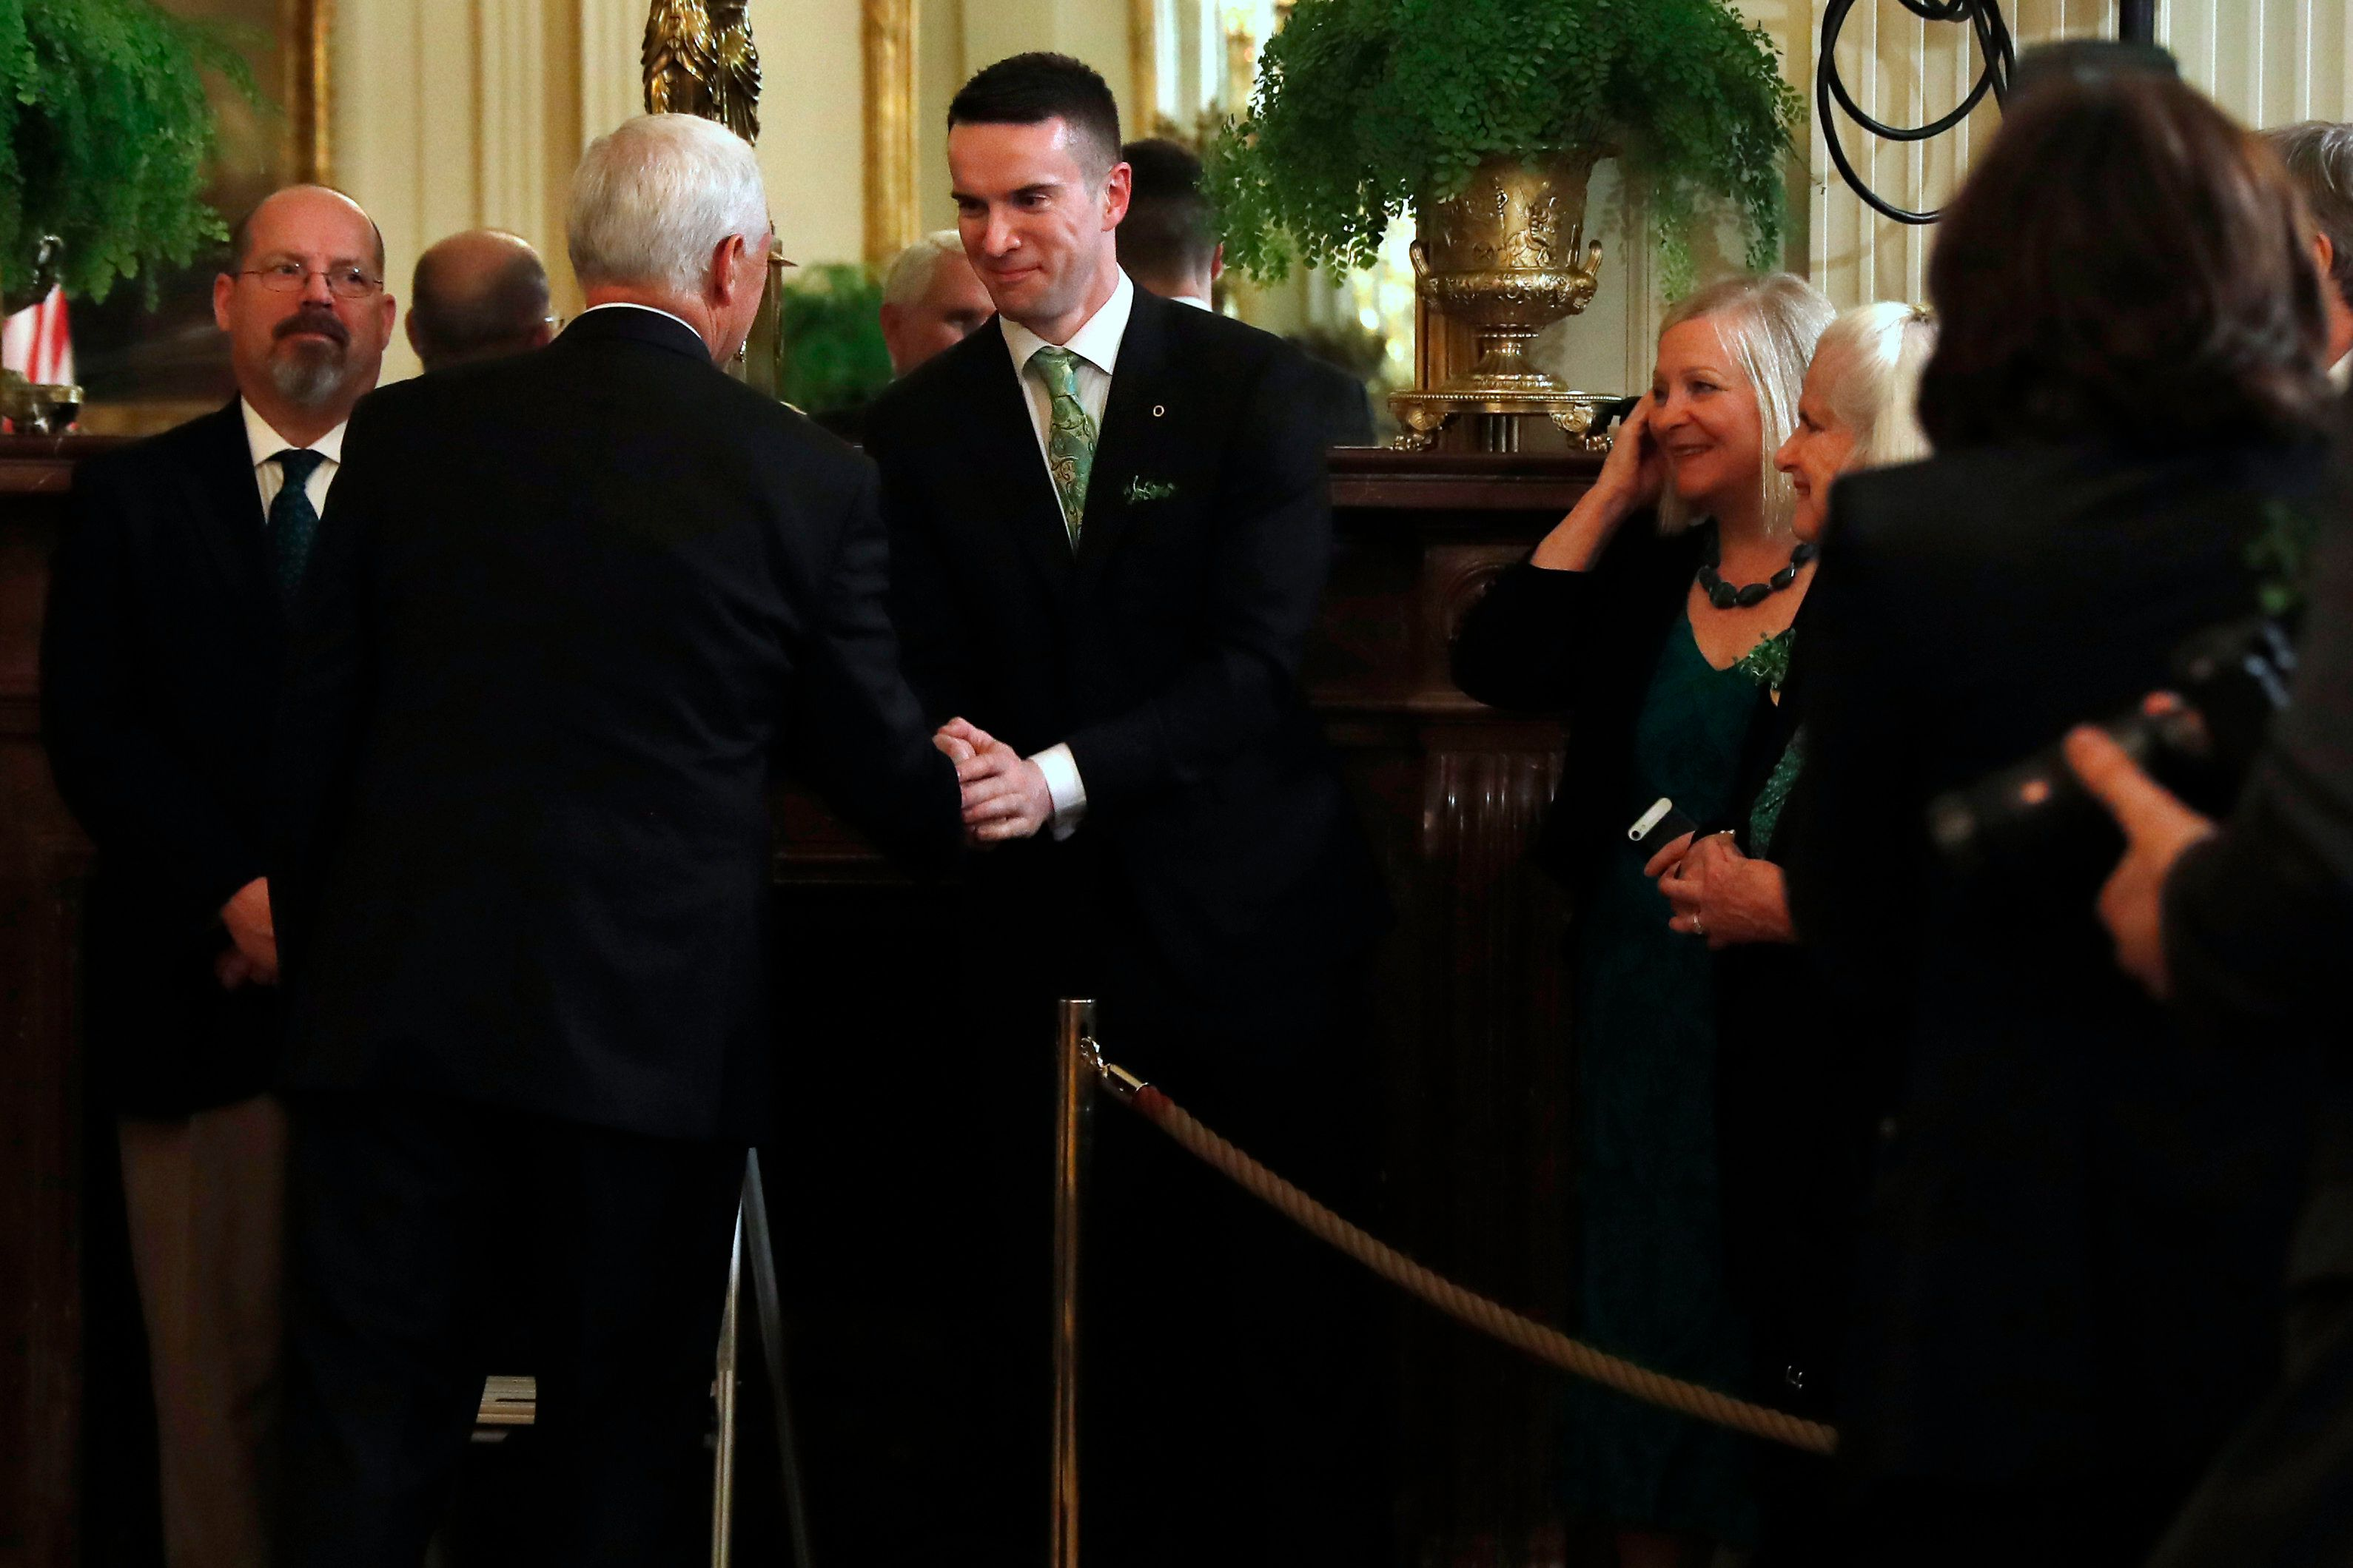 Ireland's Prime Minister Shows Up With His Boyfriend At Mike Pence's House